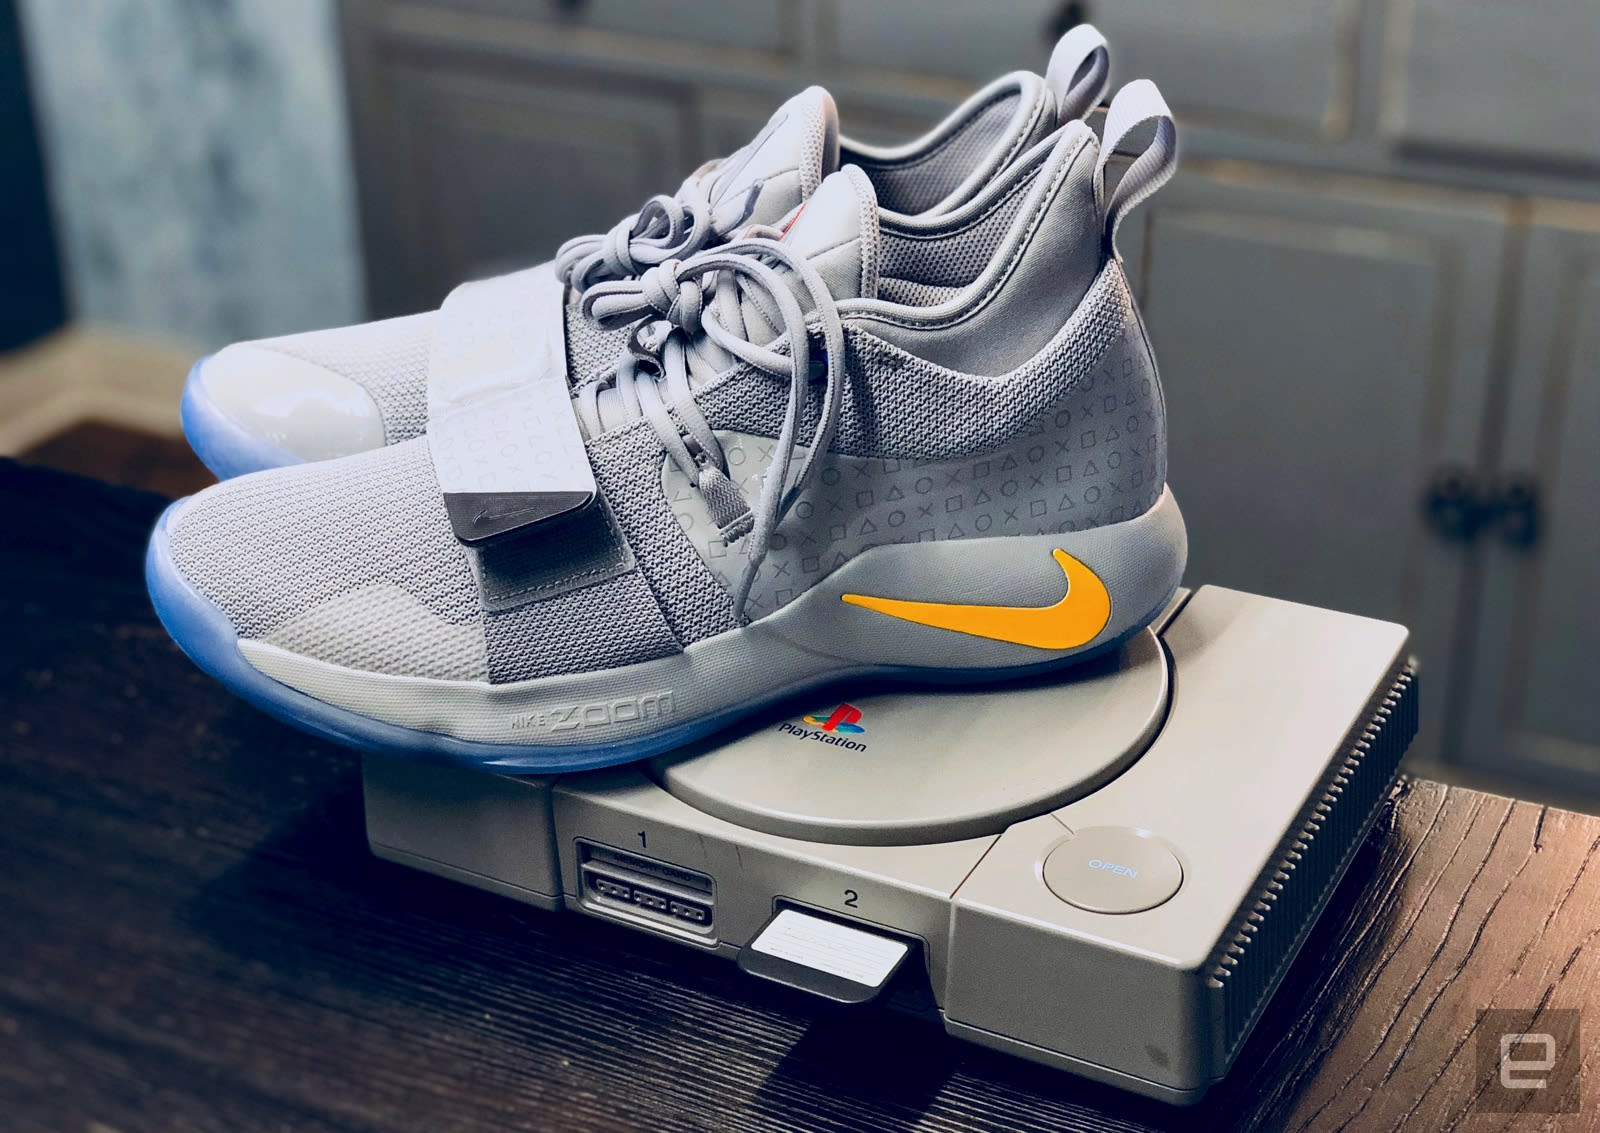 b17e2c39fb9 Nike s new PlayStation sneakers pay homage to Sony s classic console